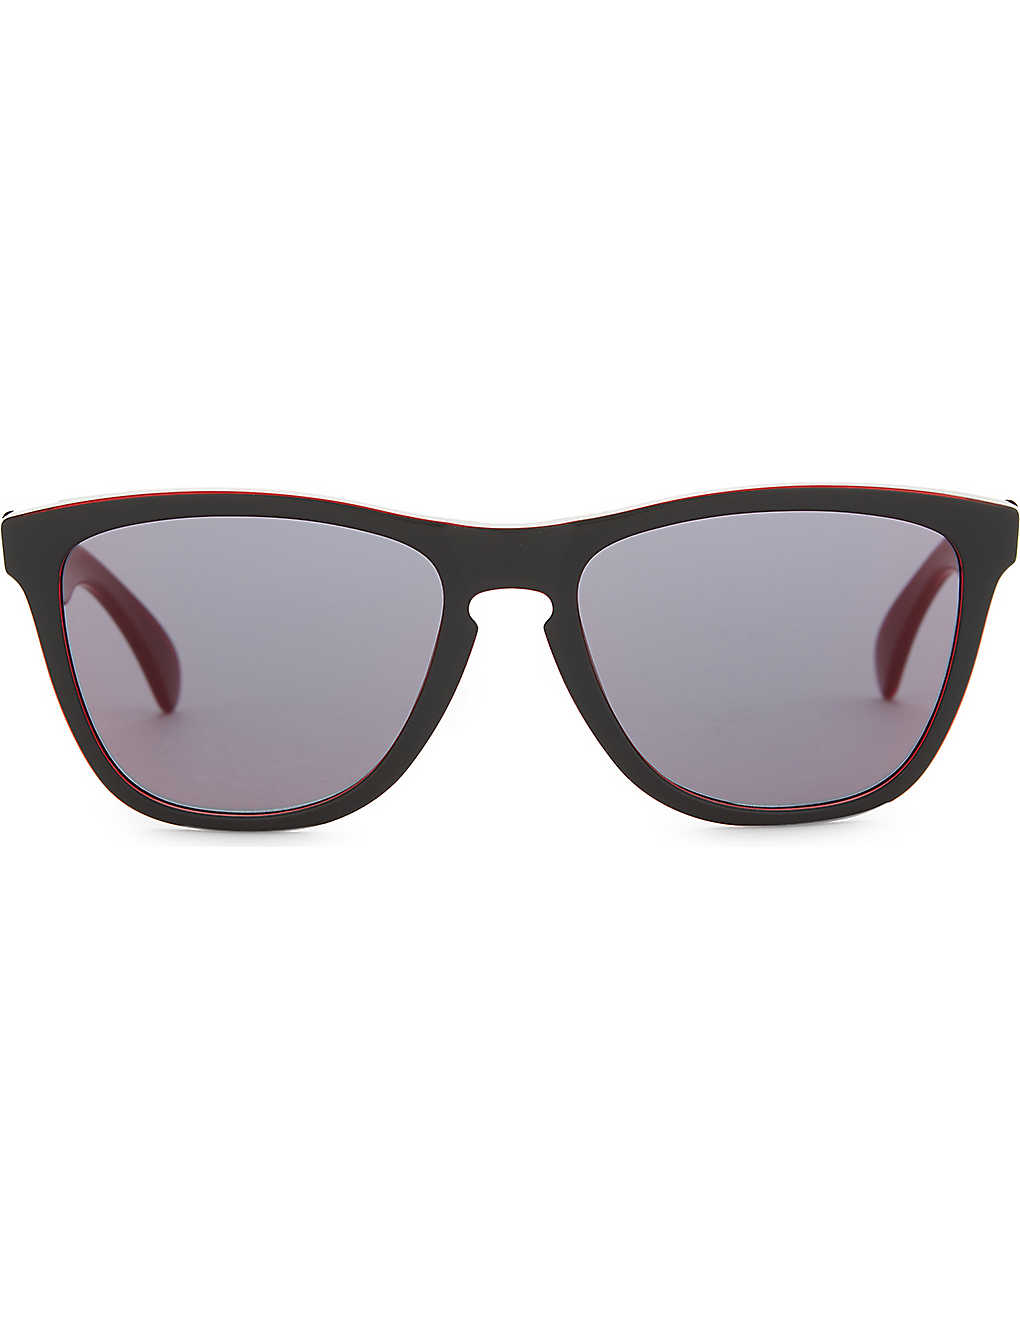 375c329efb OAKLEY - Frogskins OO9013 square sunglasses